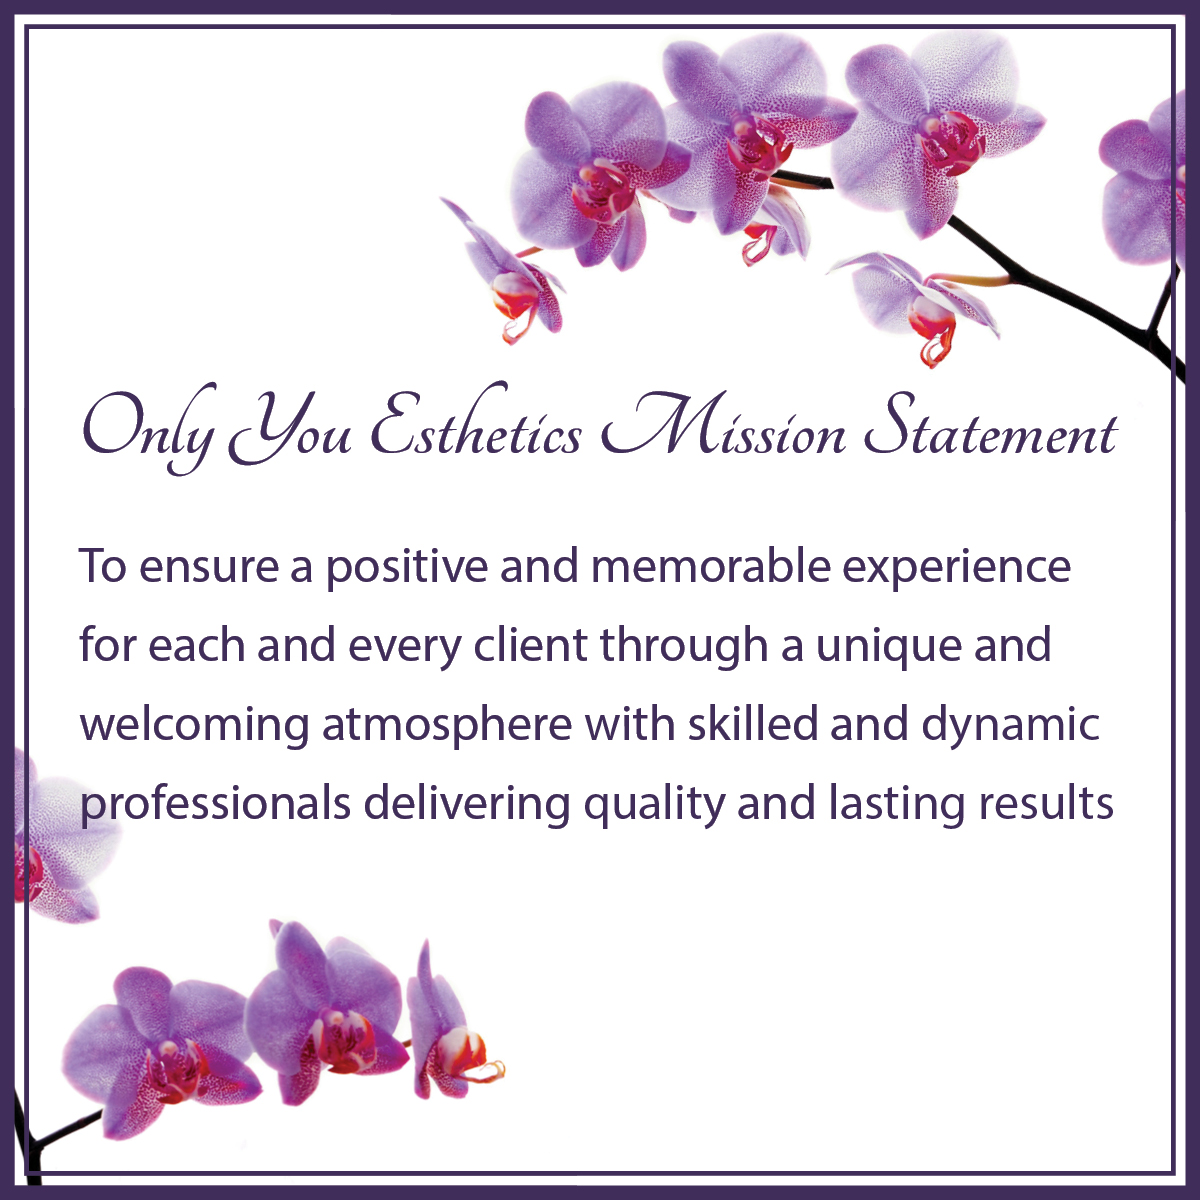 Mission statement only you esthetics for A mission statement for a beauty salon